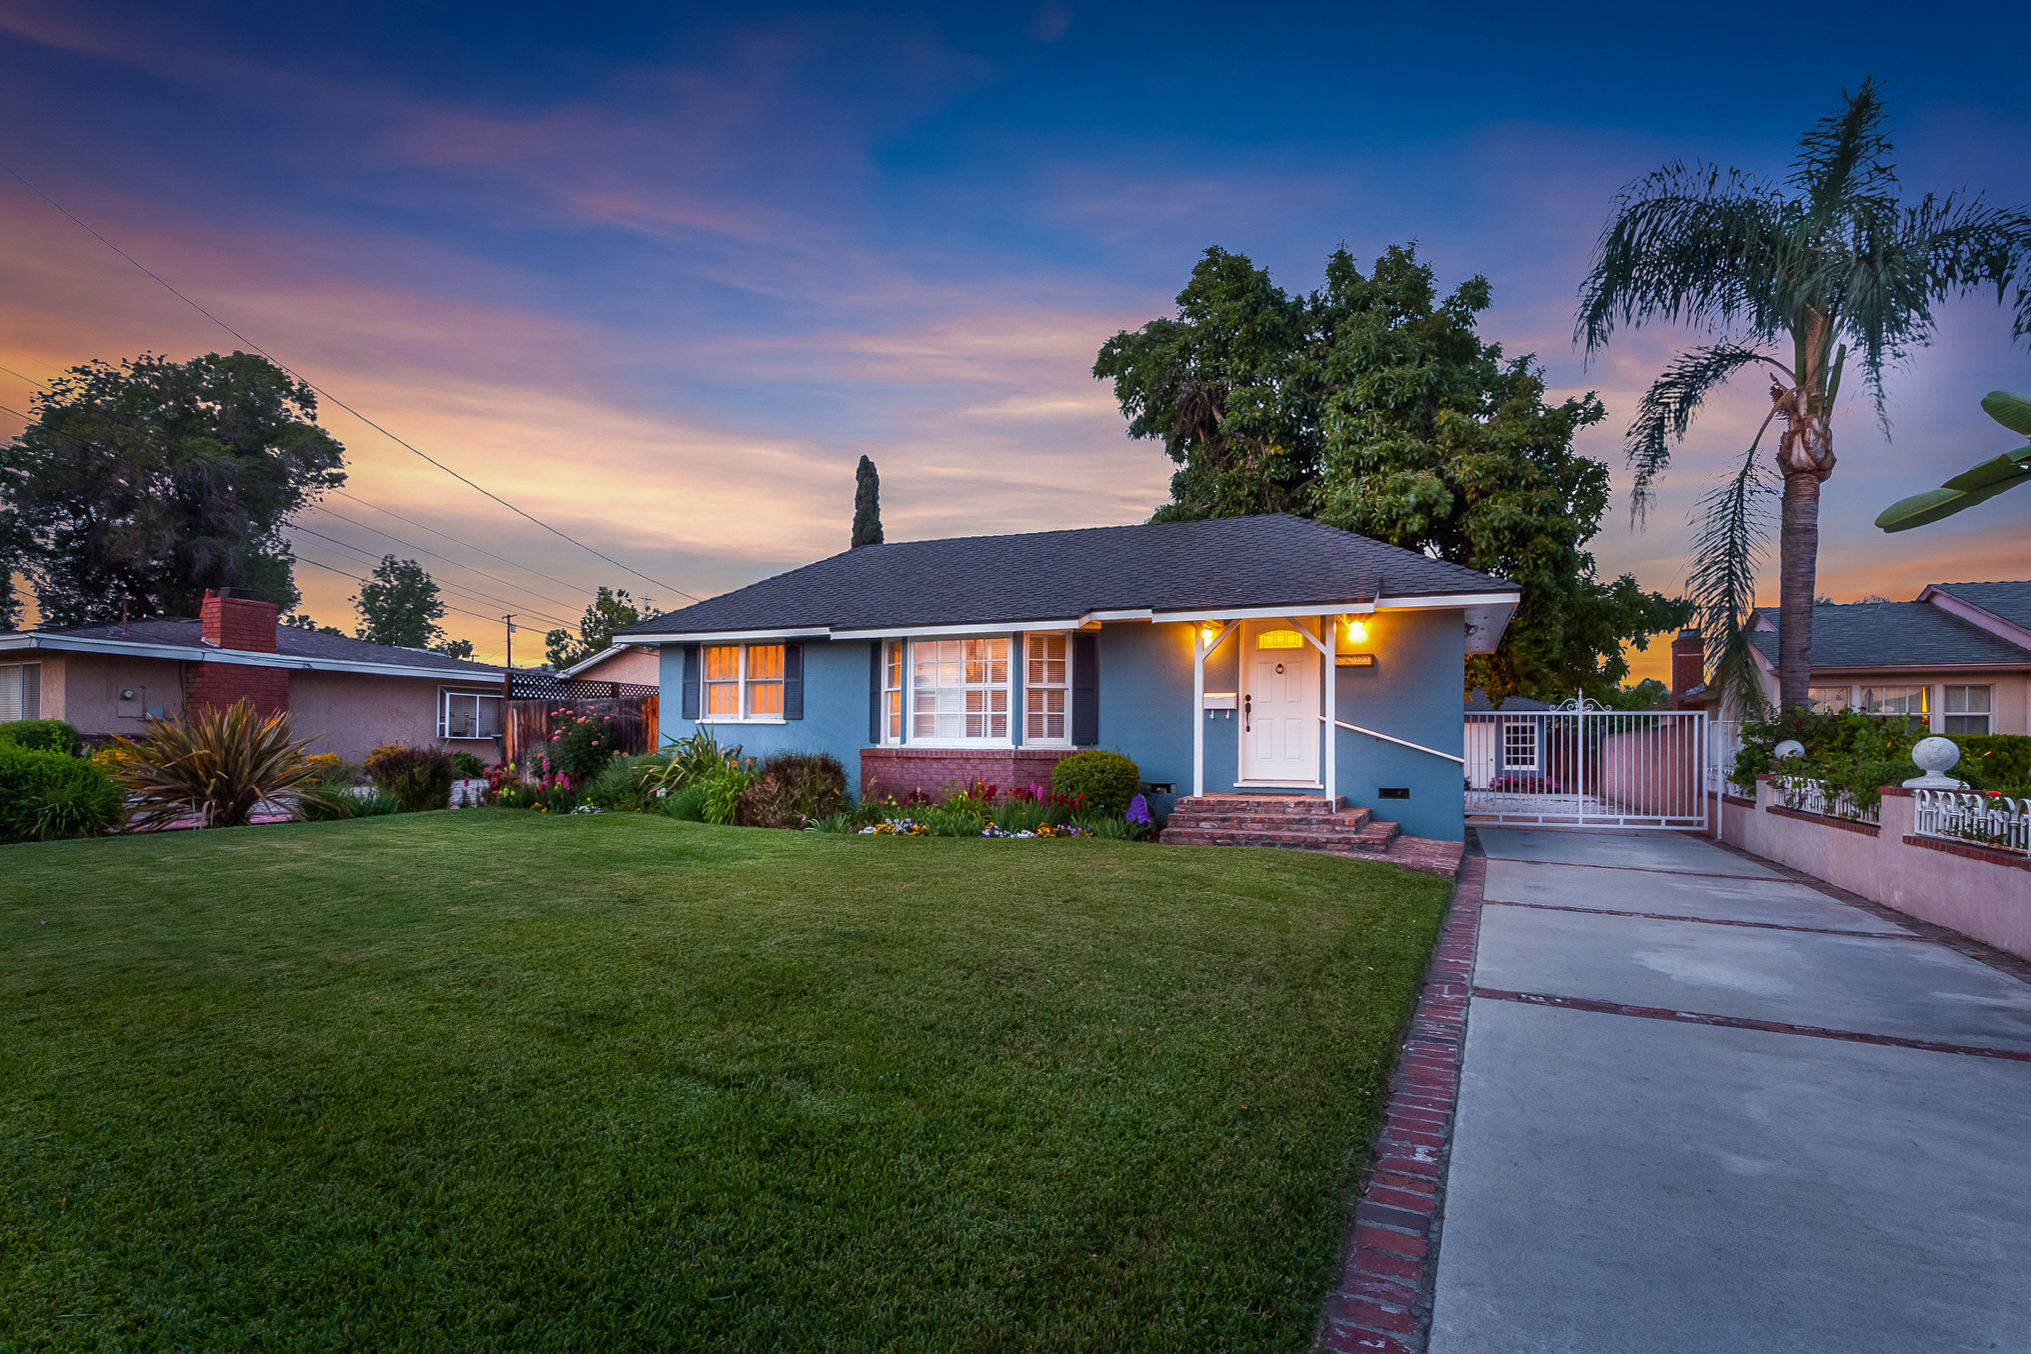 san gabriel mls photography